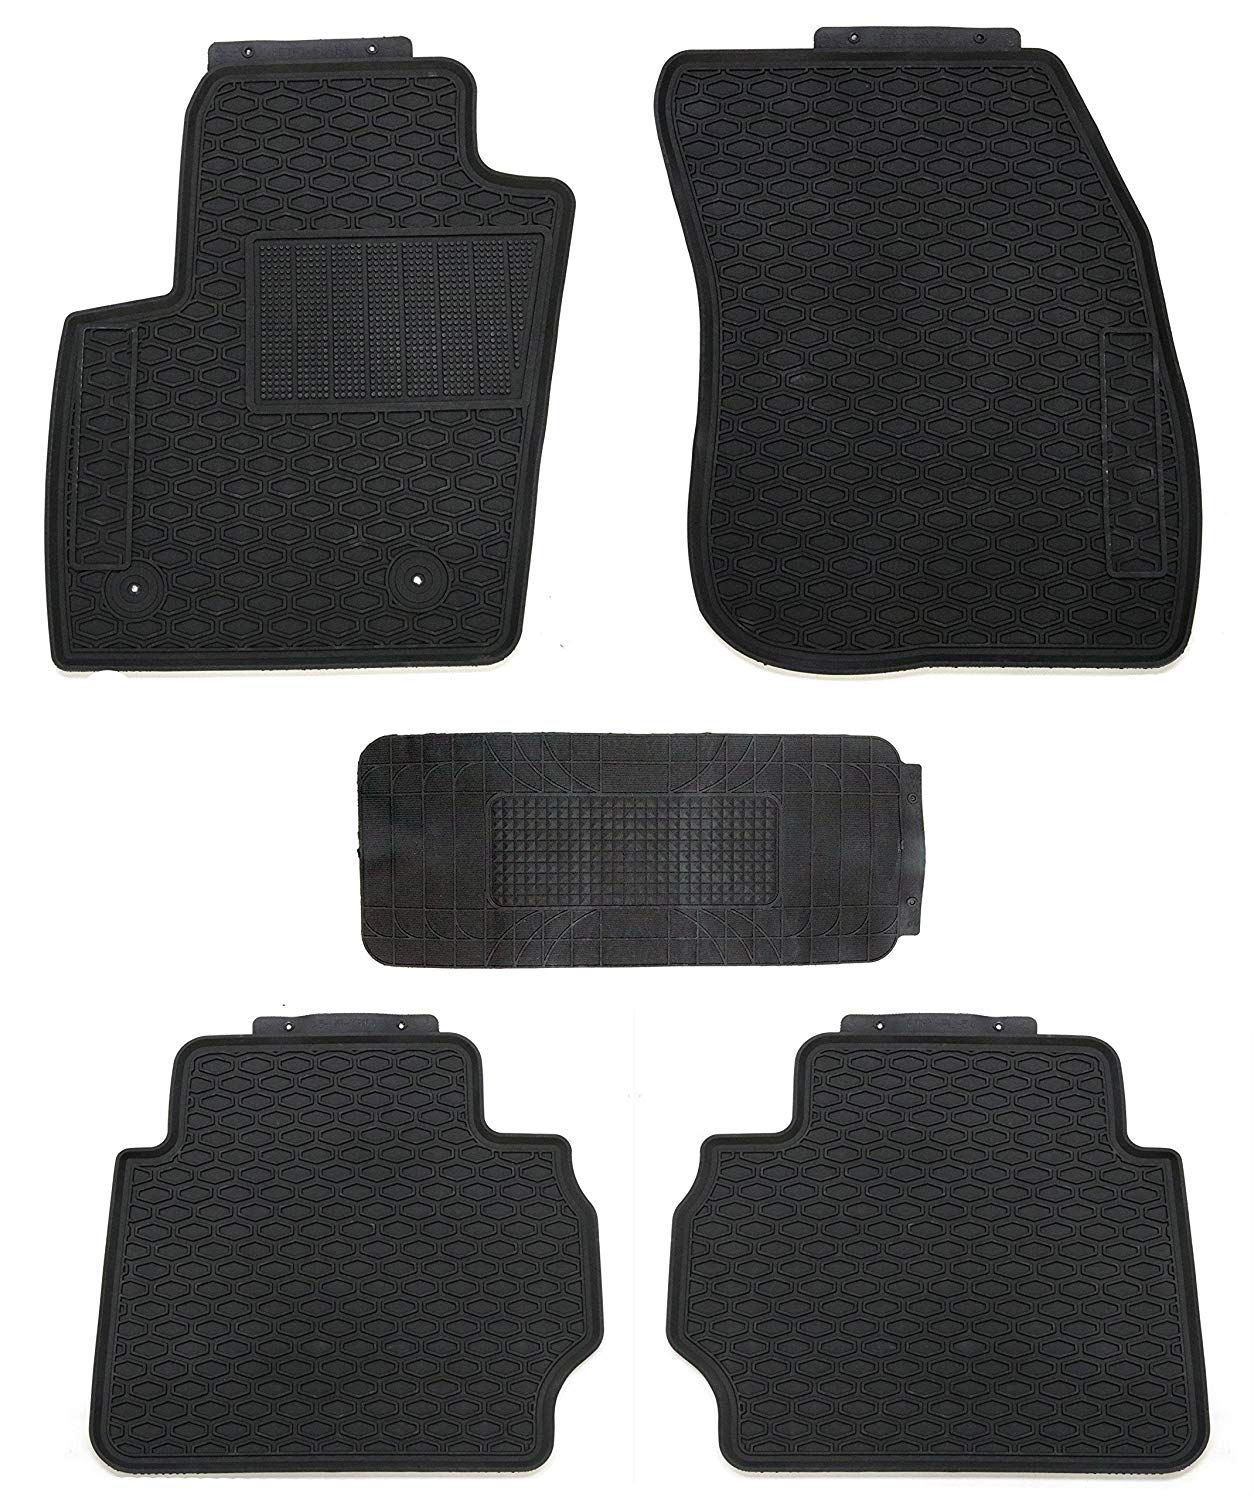 Tmb Motorsports All Weather Floor Mats For Ford Fusion 2013 2018